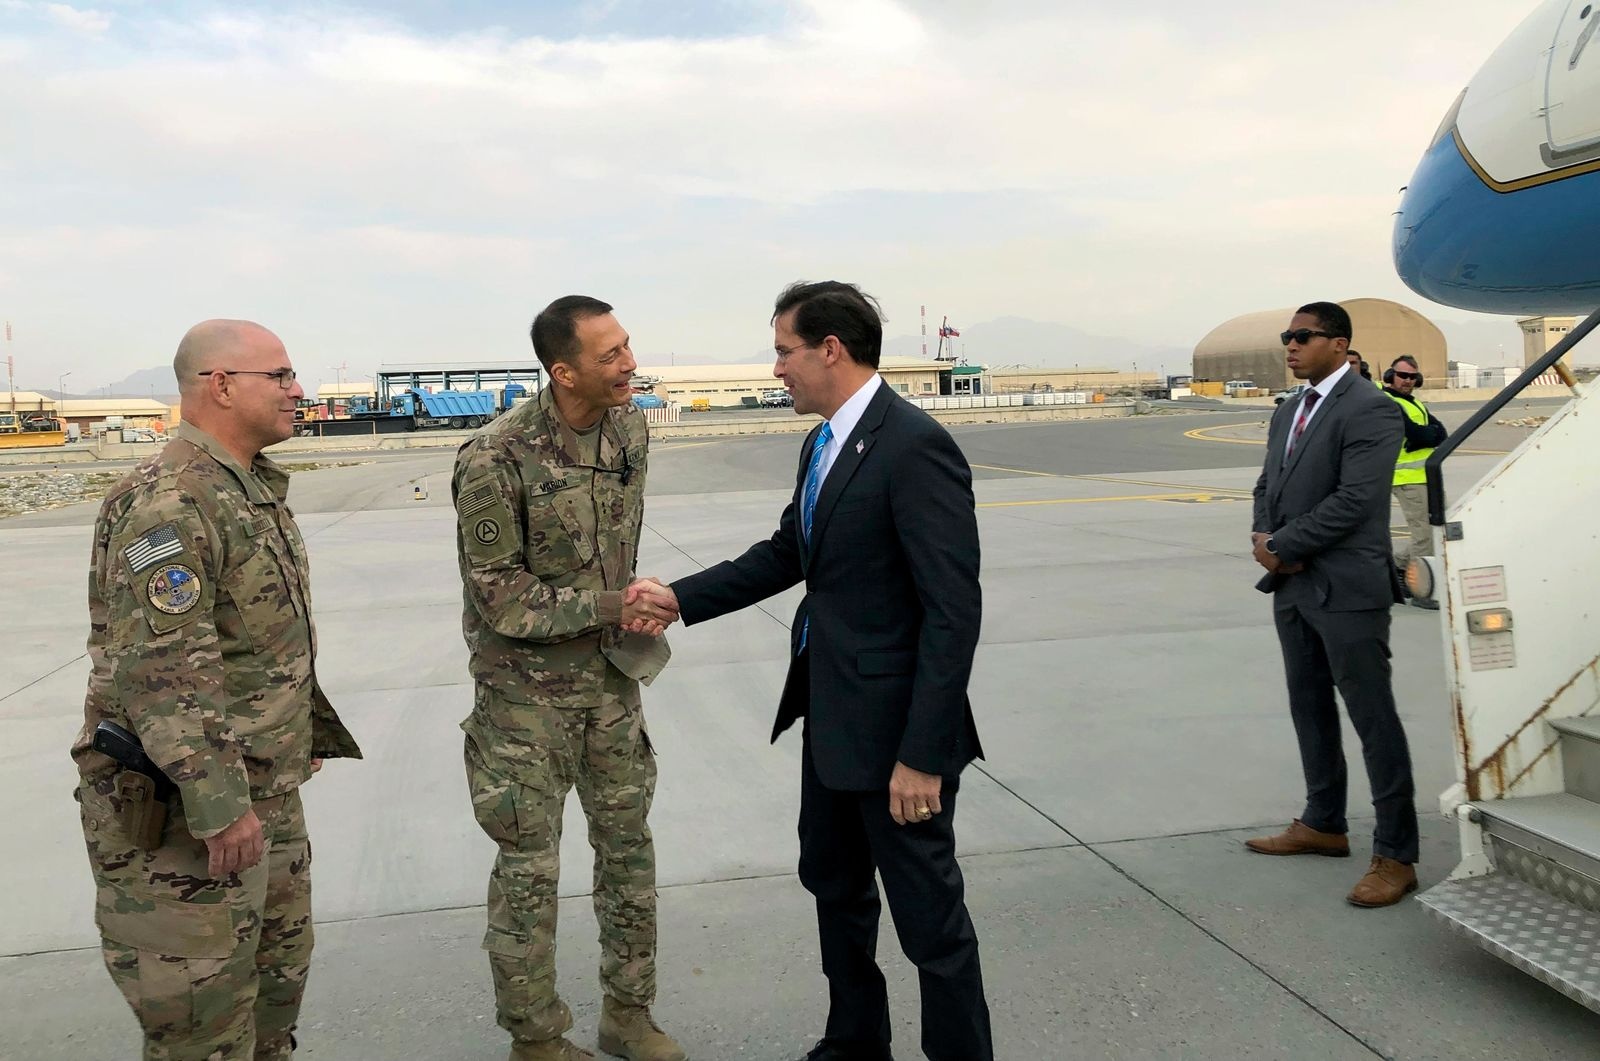 U.S. Defense Secretary Mark Esper, center, is greeted by U.S. military personnel upon arriving in Kabul, Afghanistan, Sunday, Oct. 20, 2019.{ }